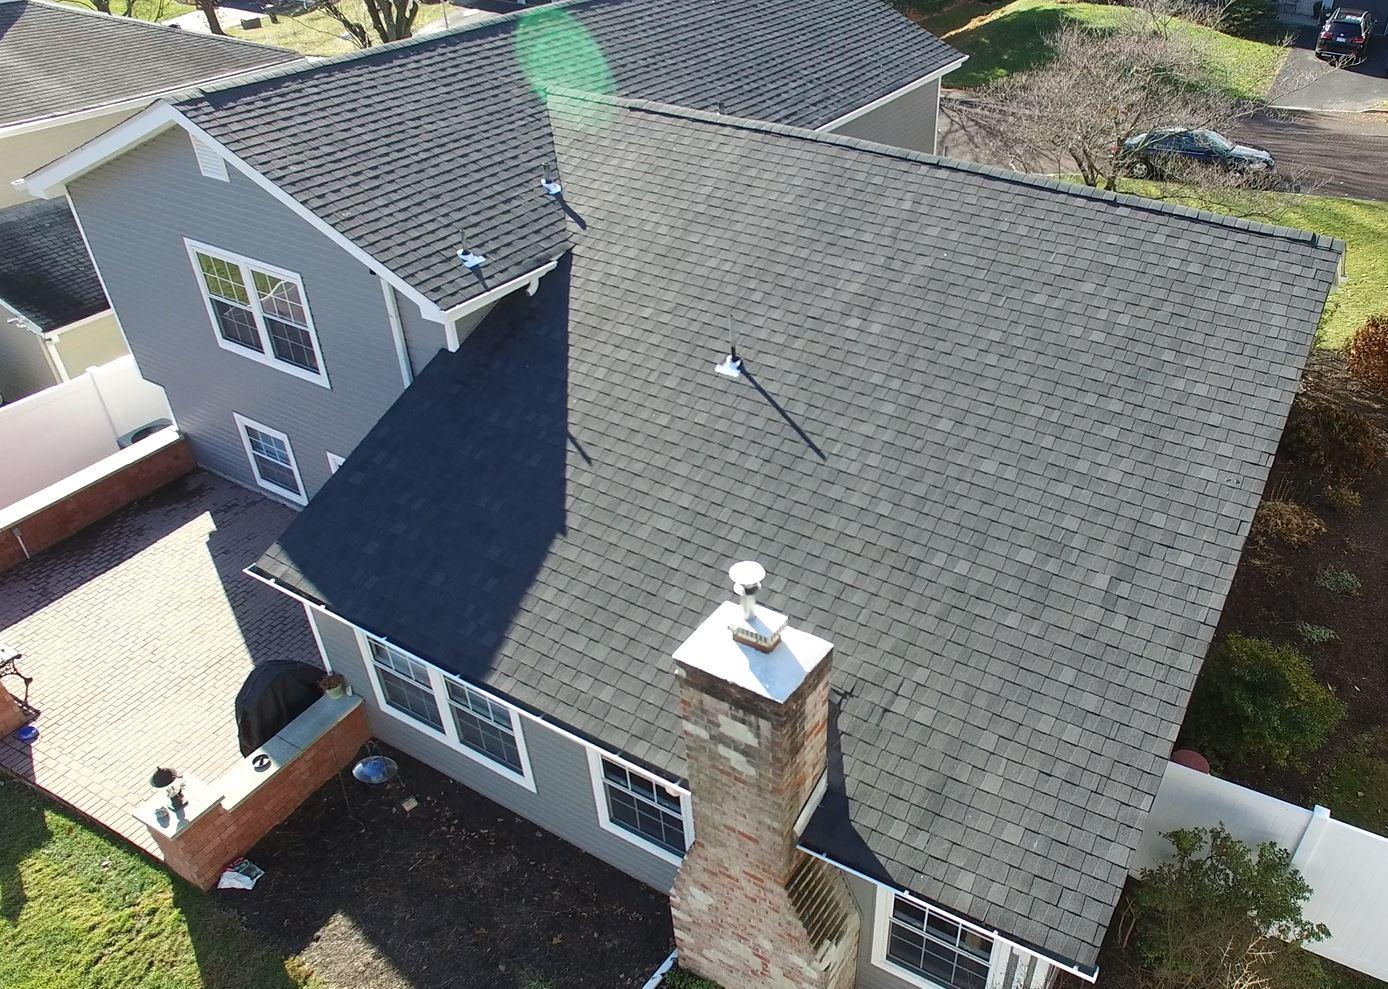 Different Roofs But A Uniform Appearance, Thanks to Pinnacle Exteriors